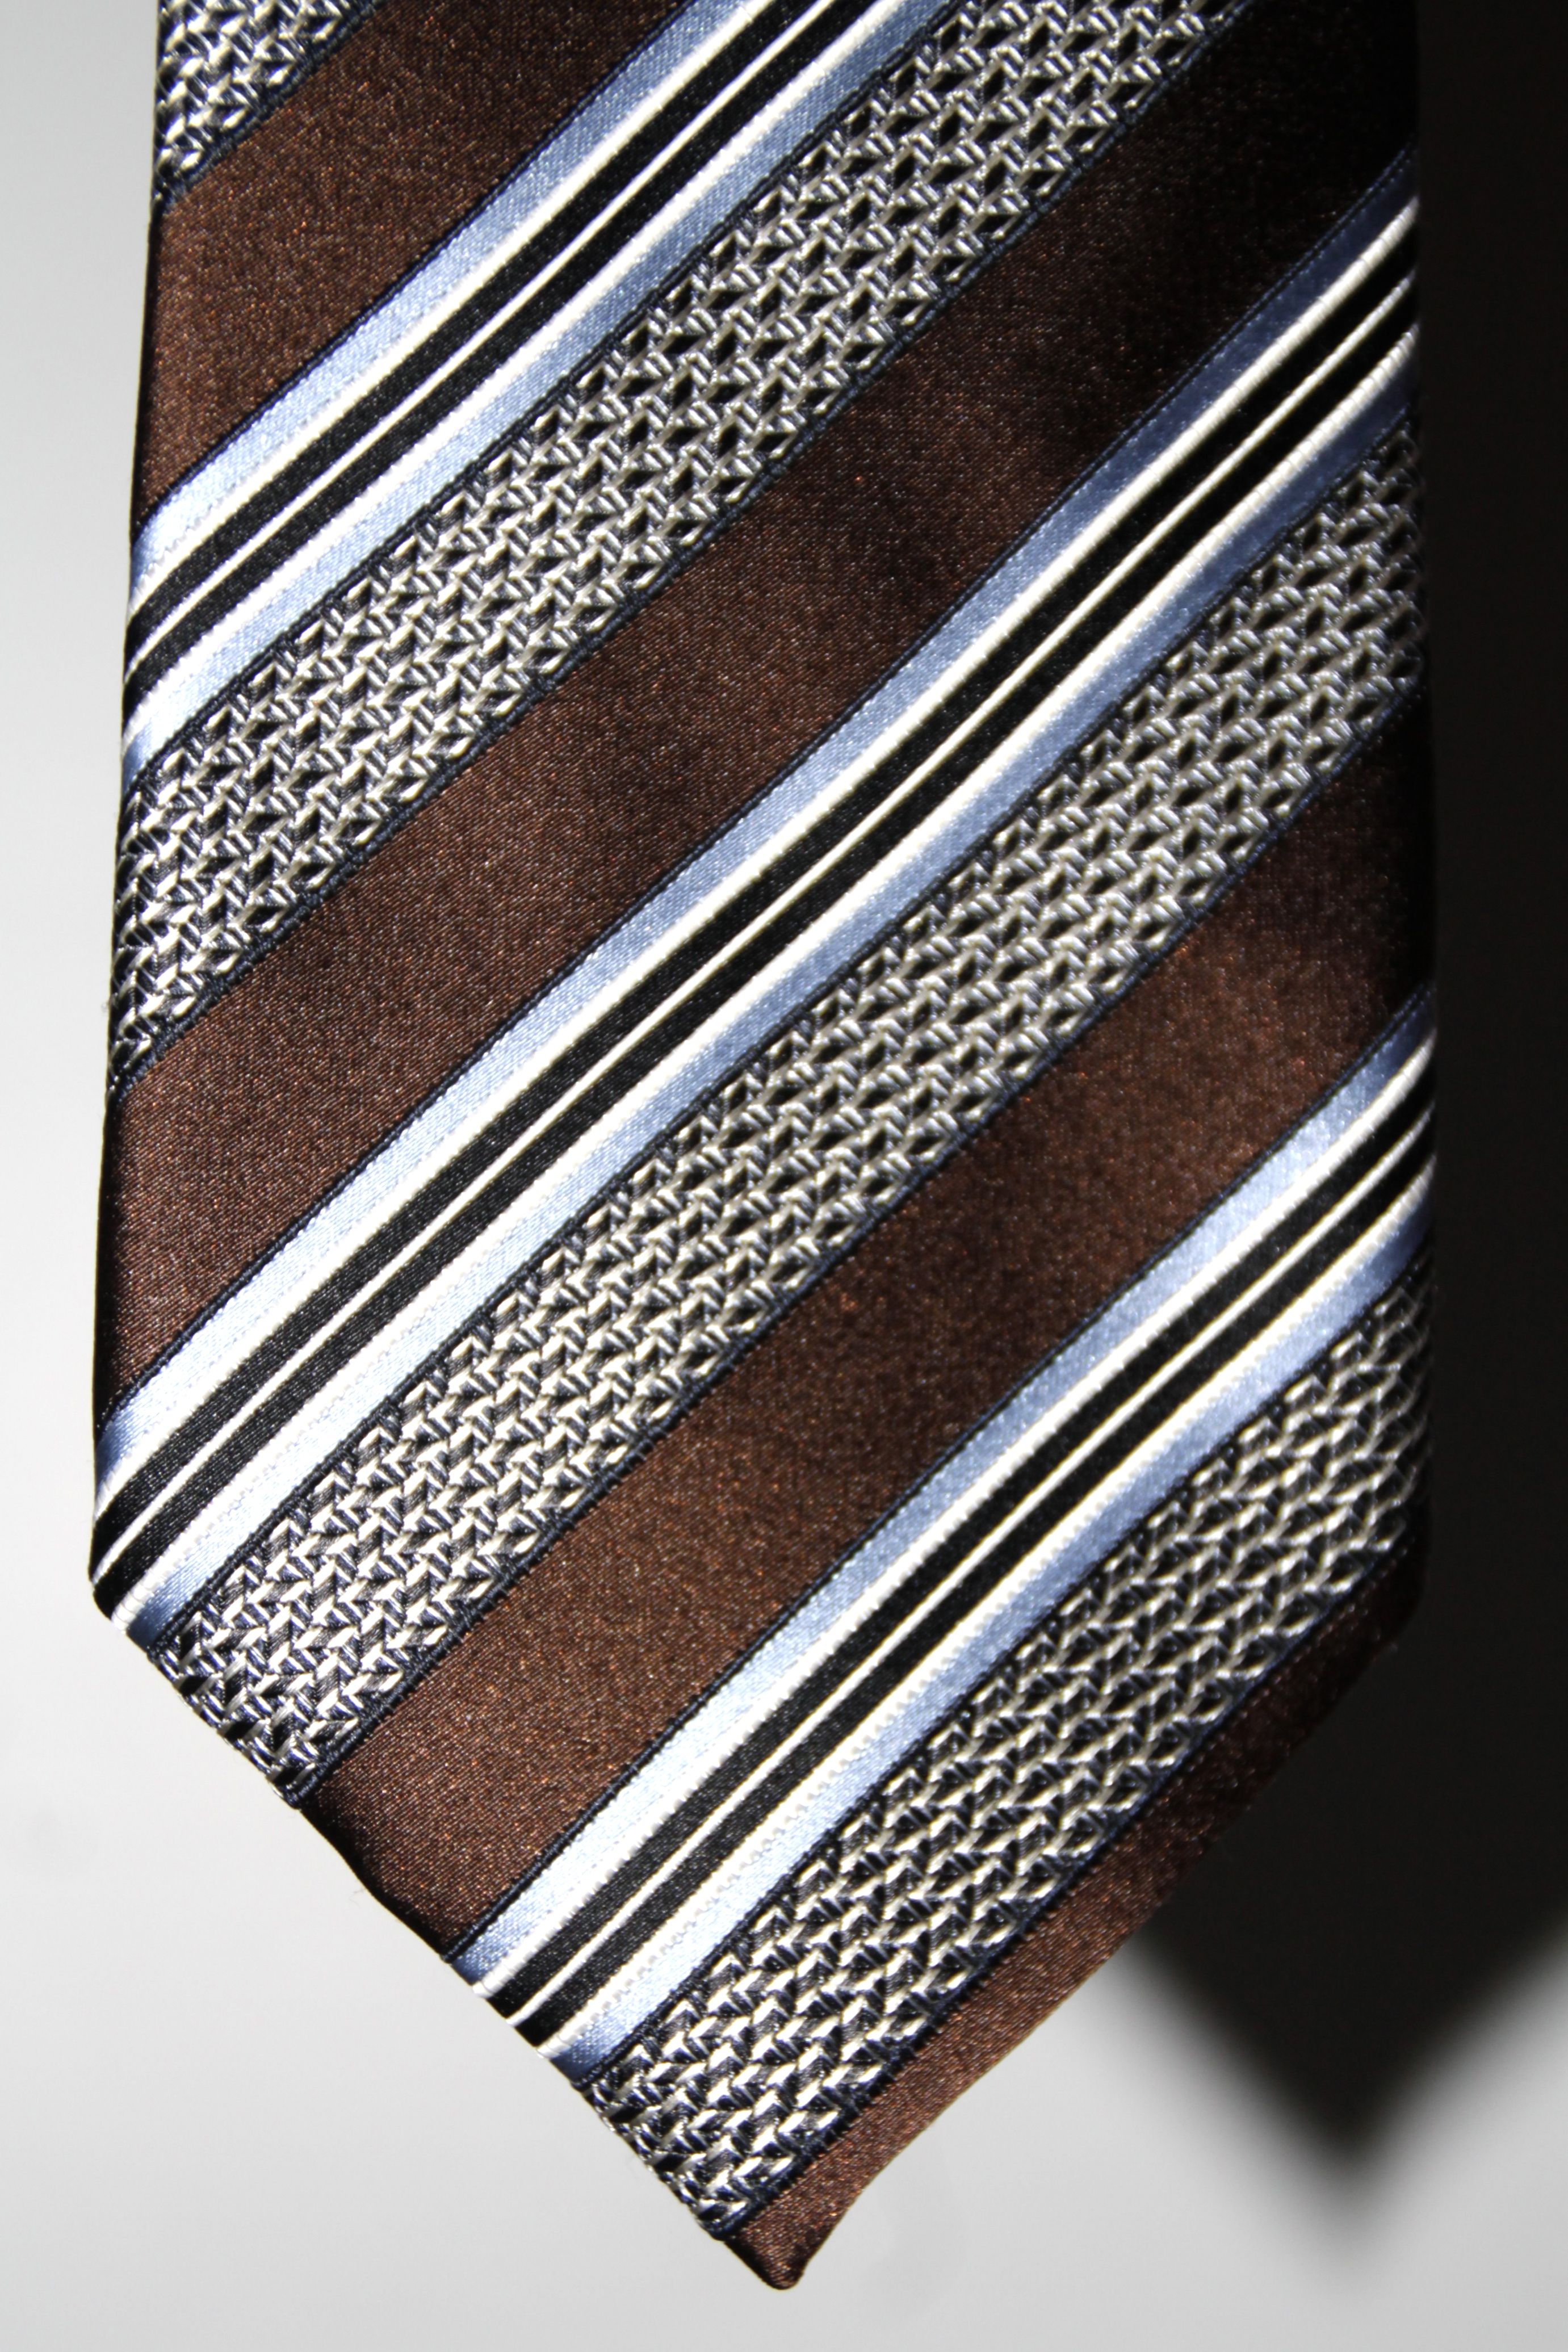 Zegna tie in question